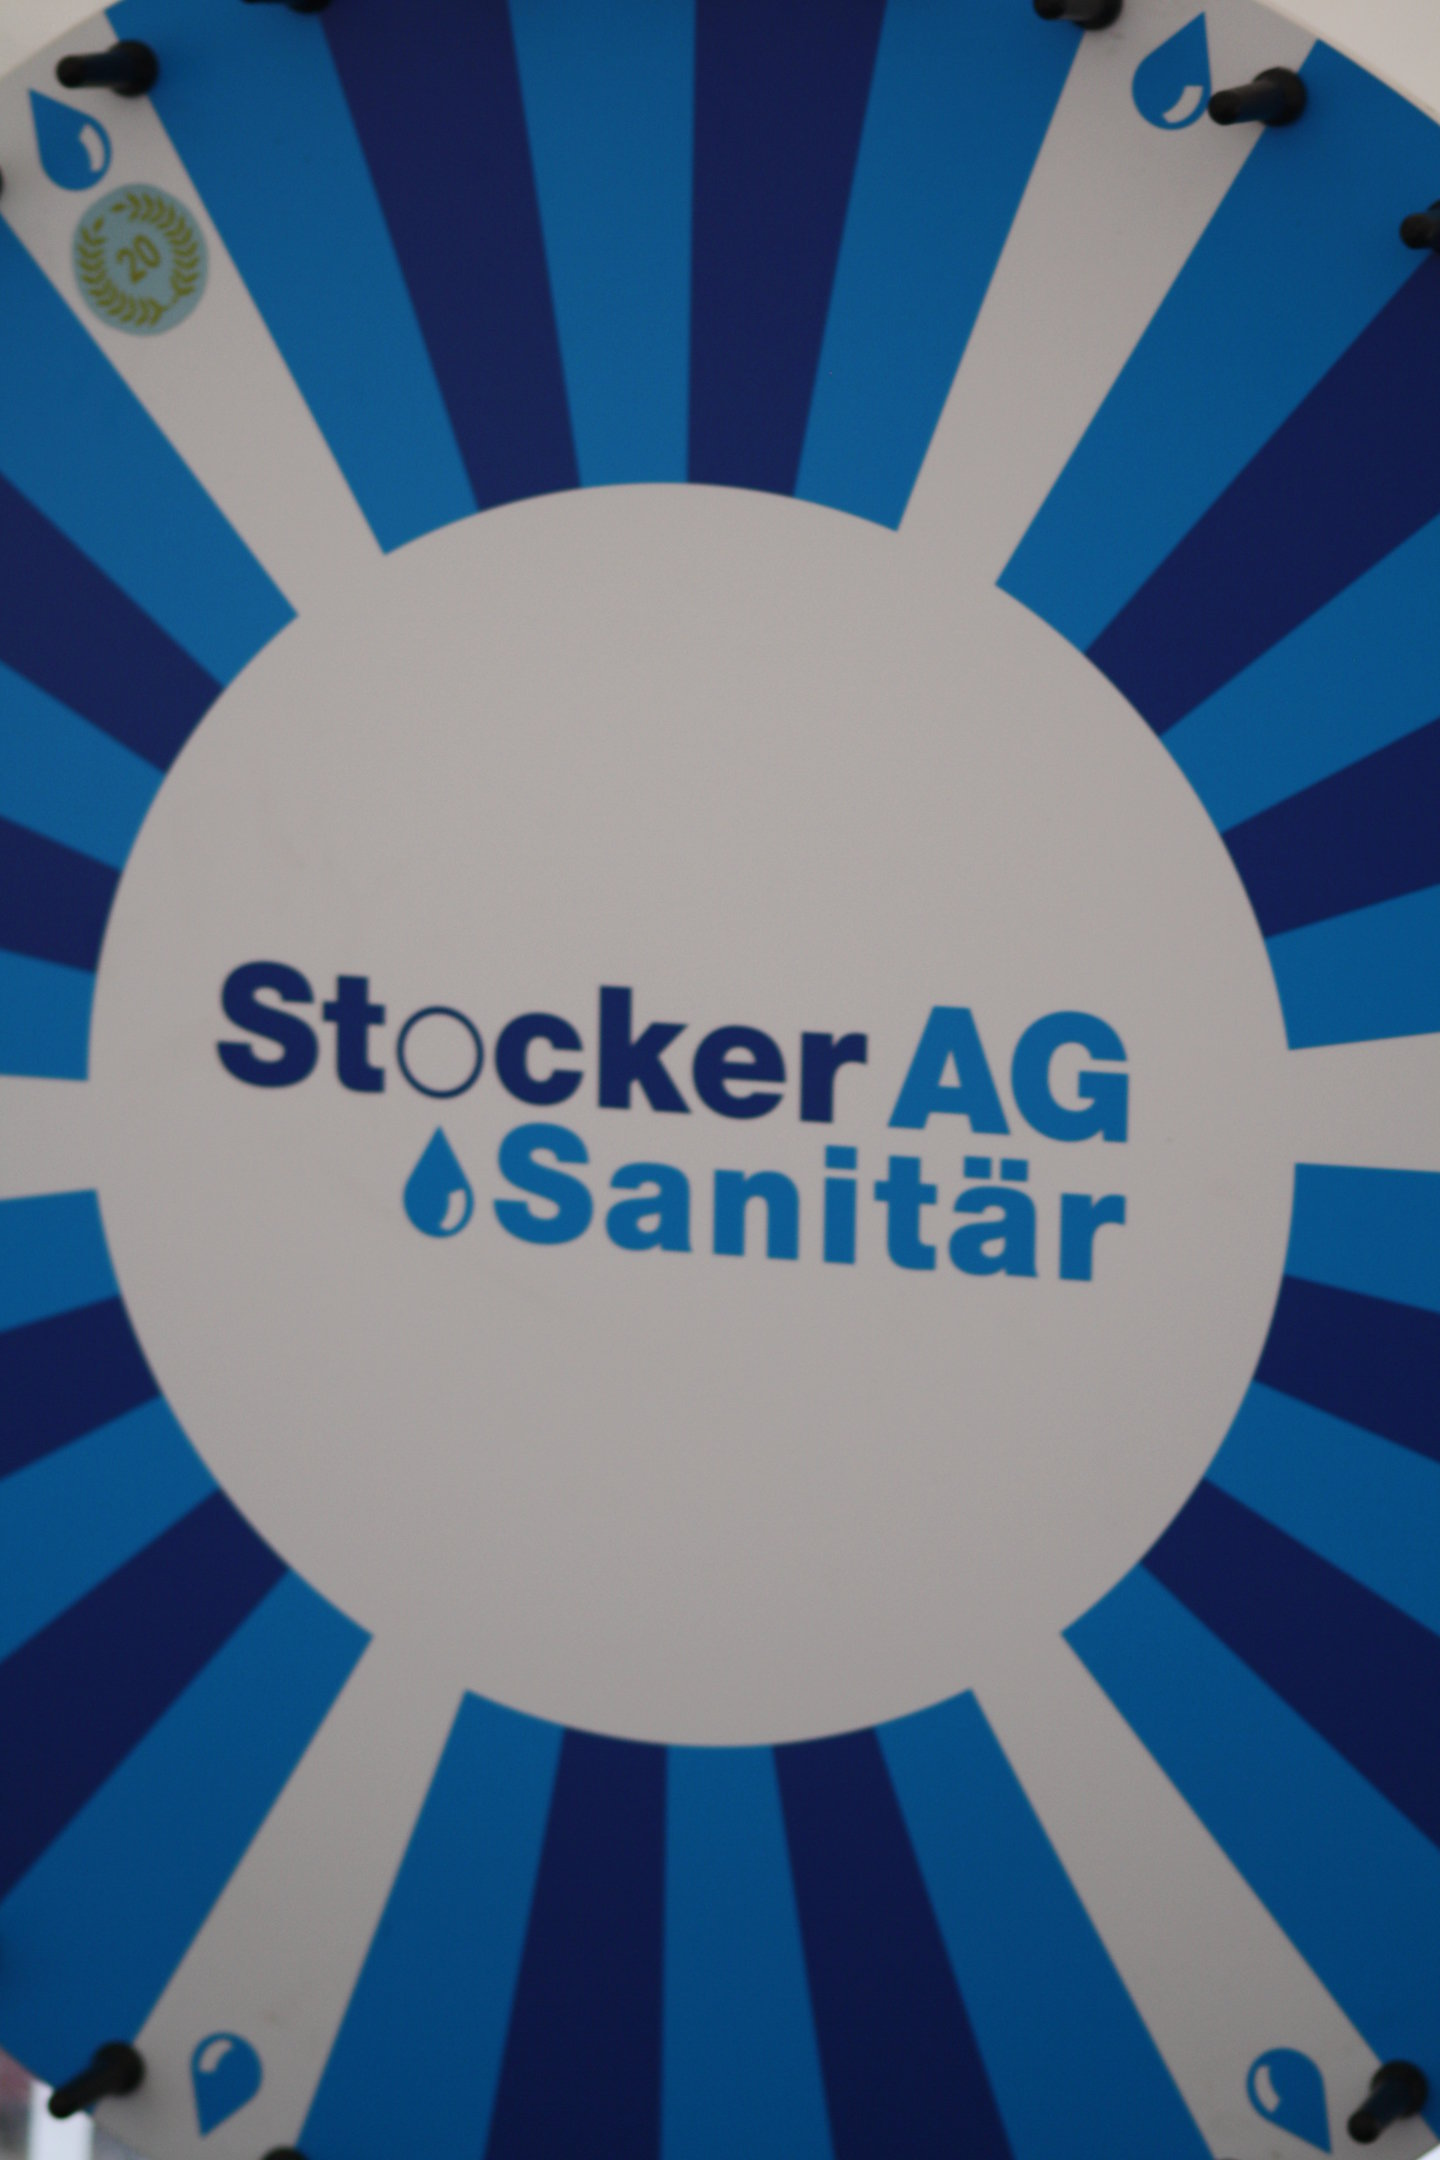 Stocker Sanitär AG